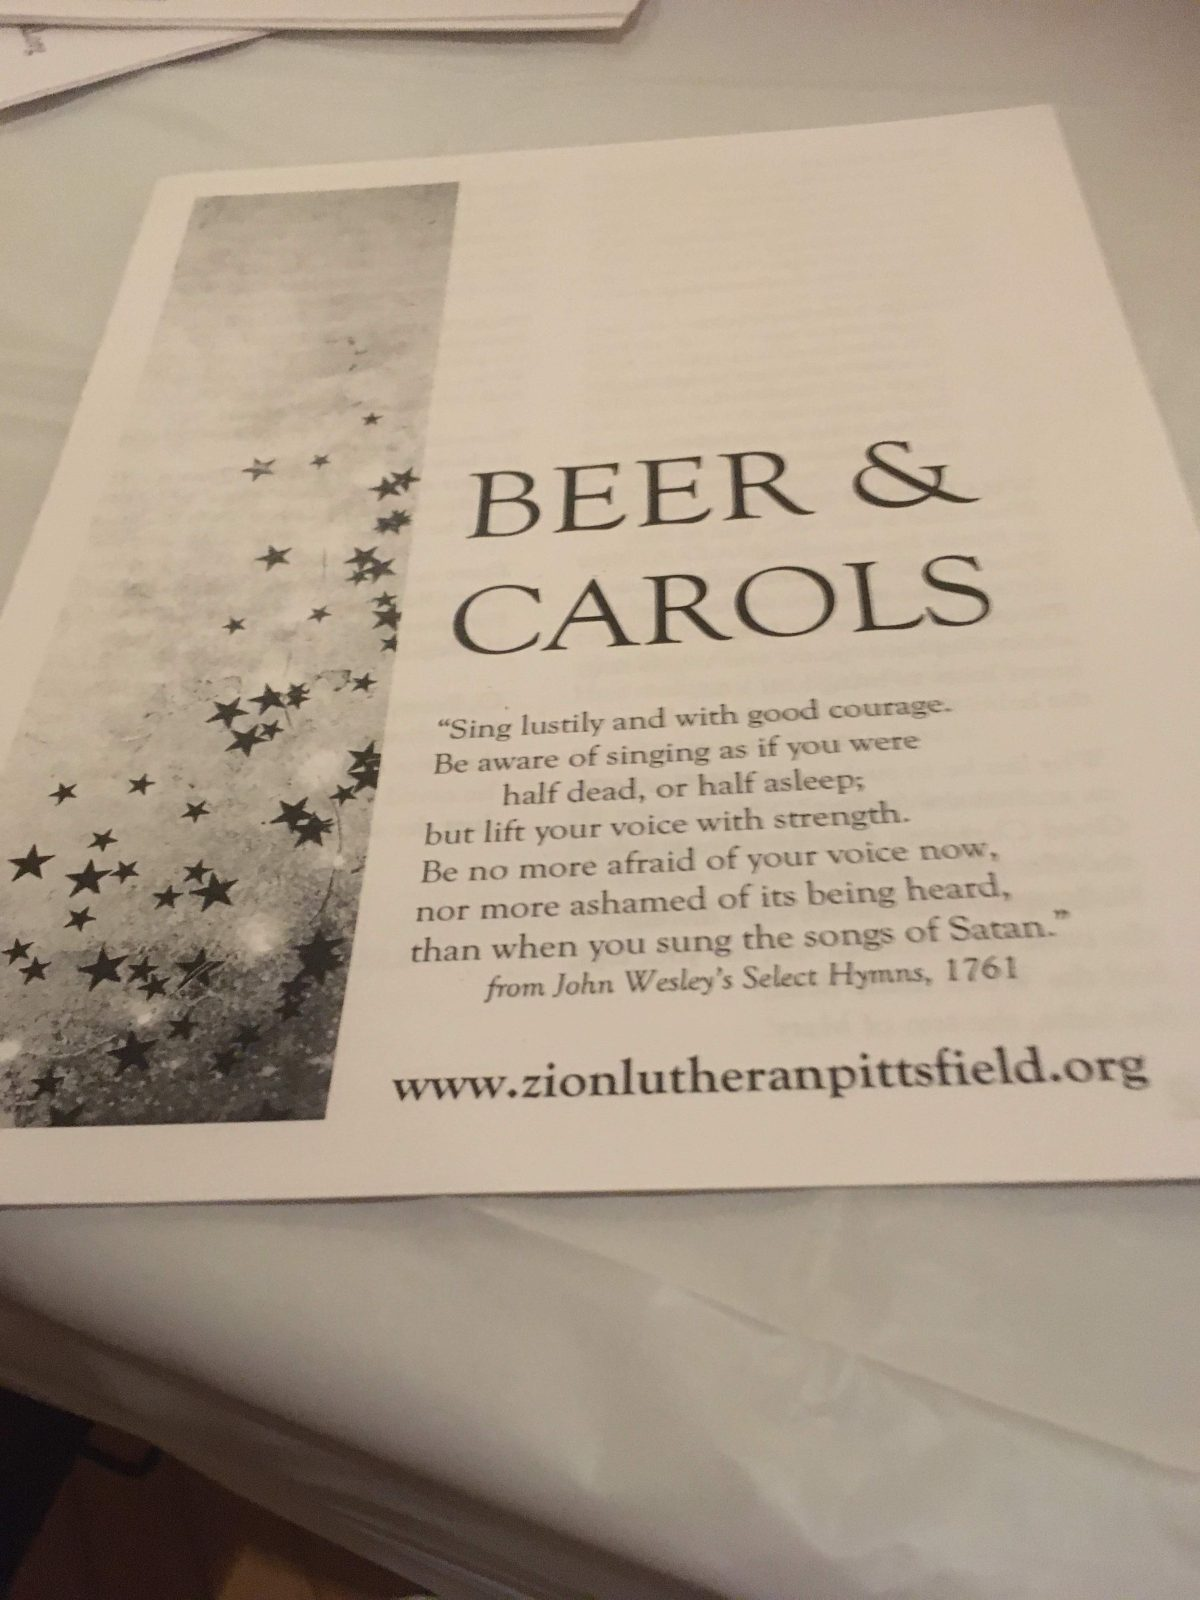 Beer and Carols -- Sing Lustily